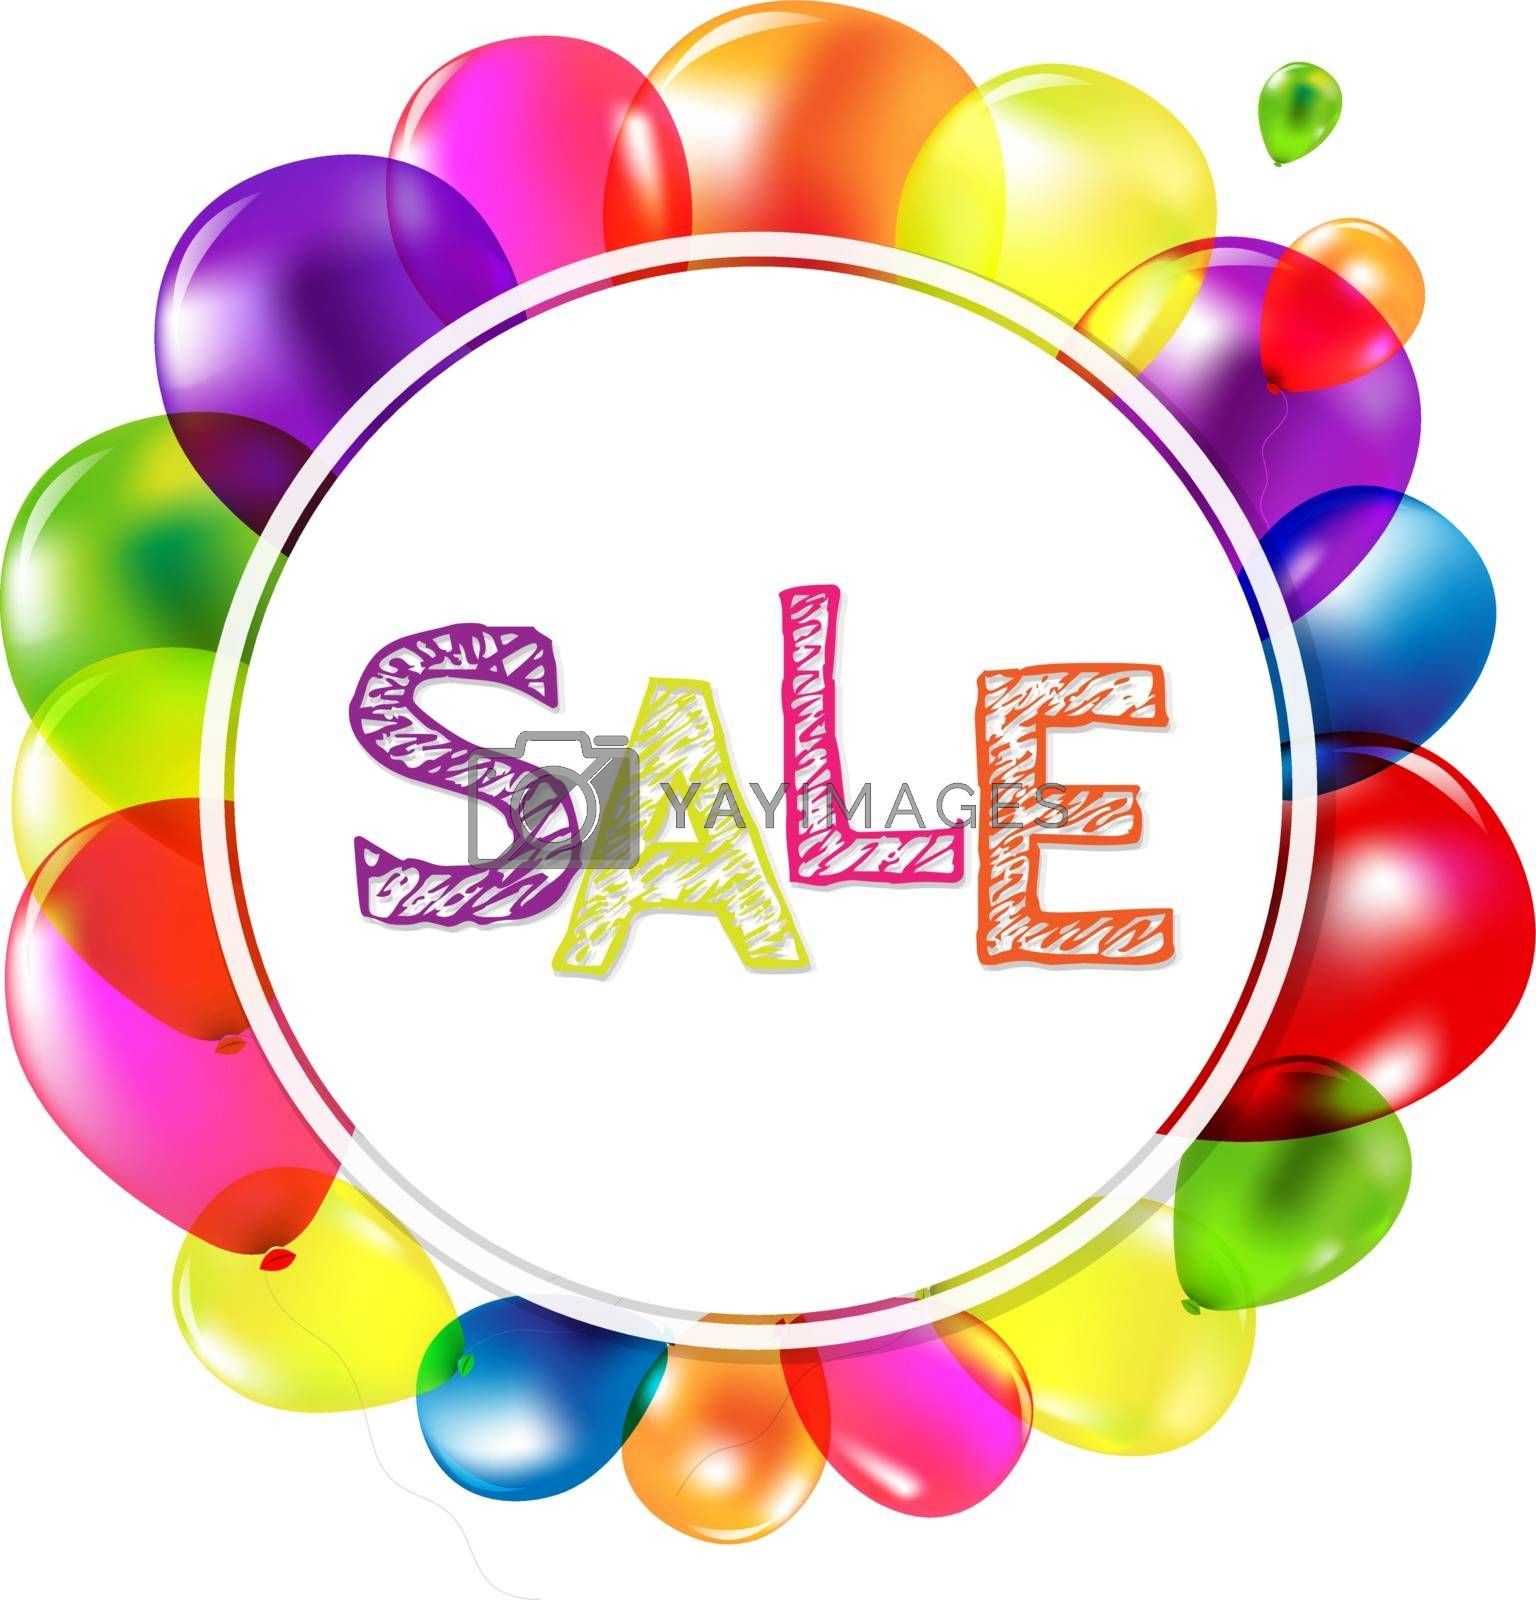 Sale Banner With Balloons by barbaliss